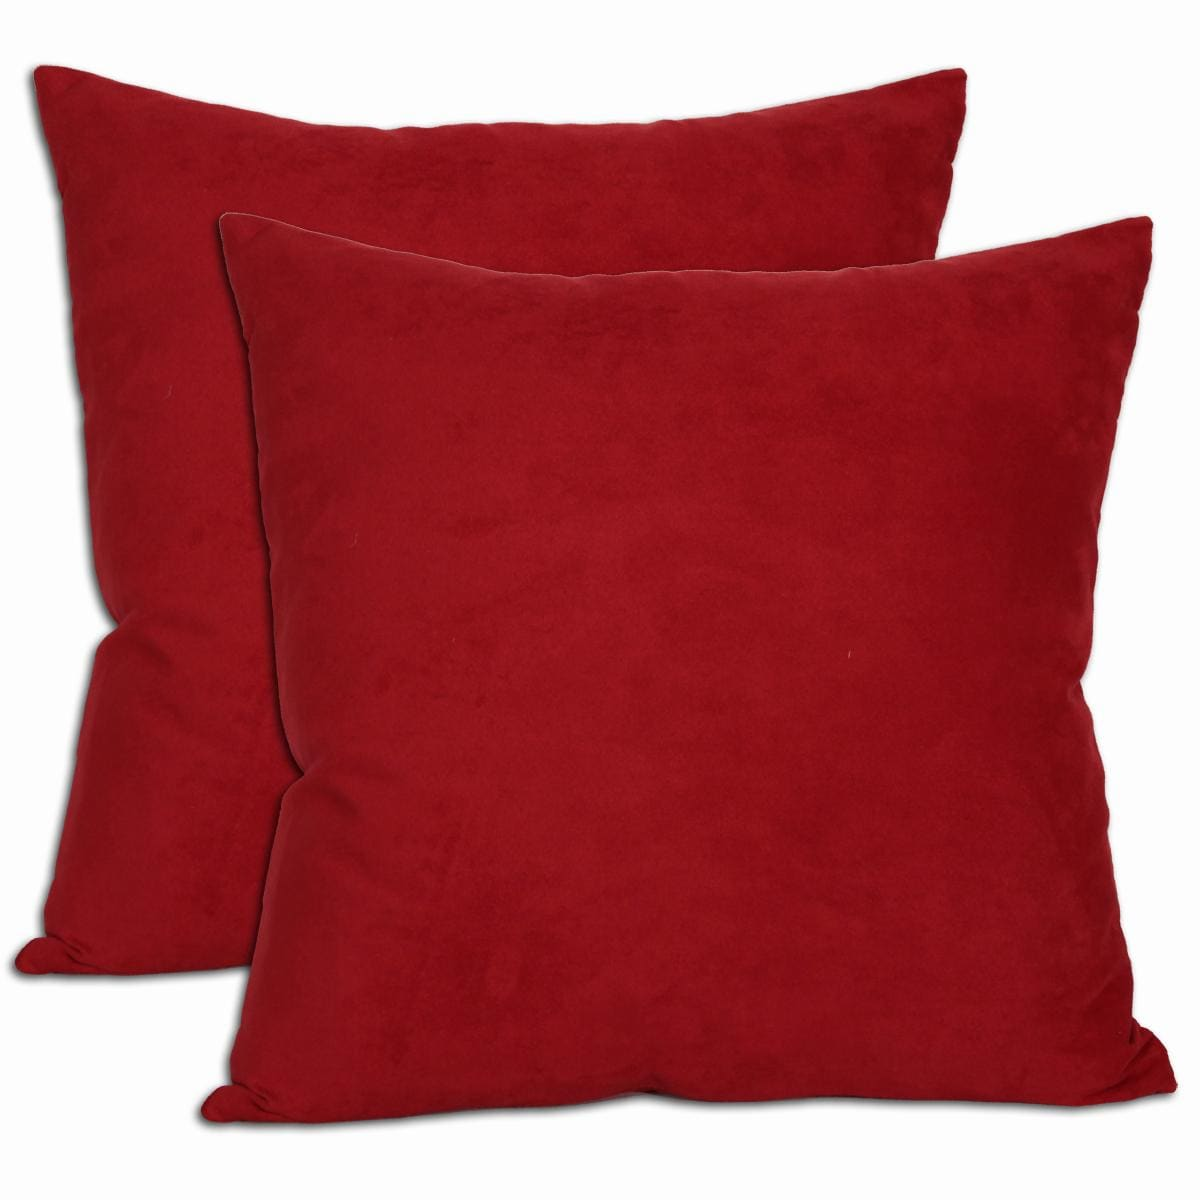 Throw Pillow Red : 18-inch Red Microsuede Feather and Down Filled Throw Pillows (Set of Two) - Overstock Shopping ...